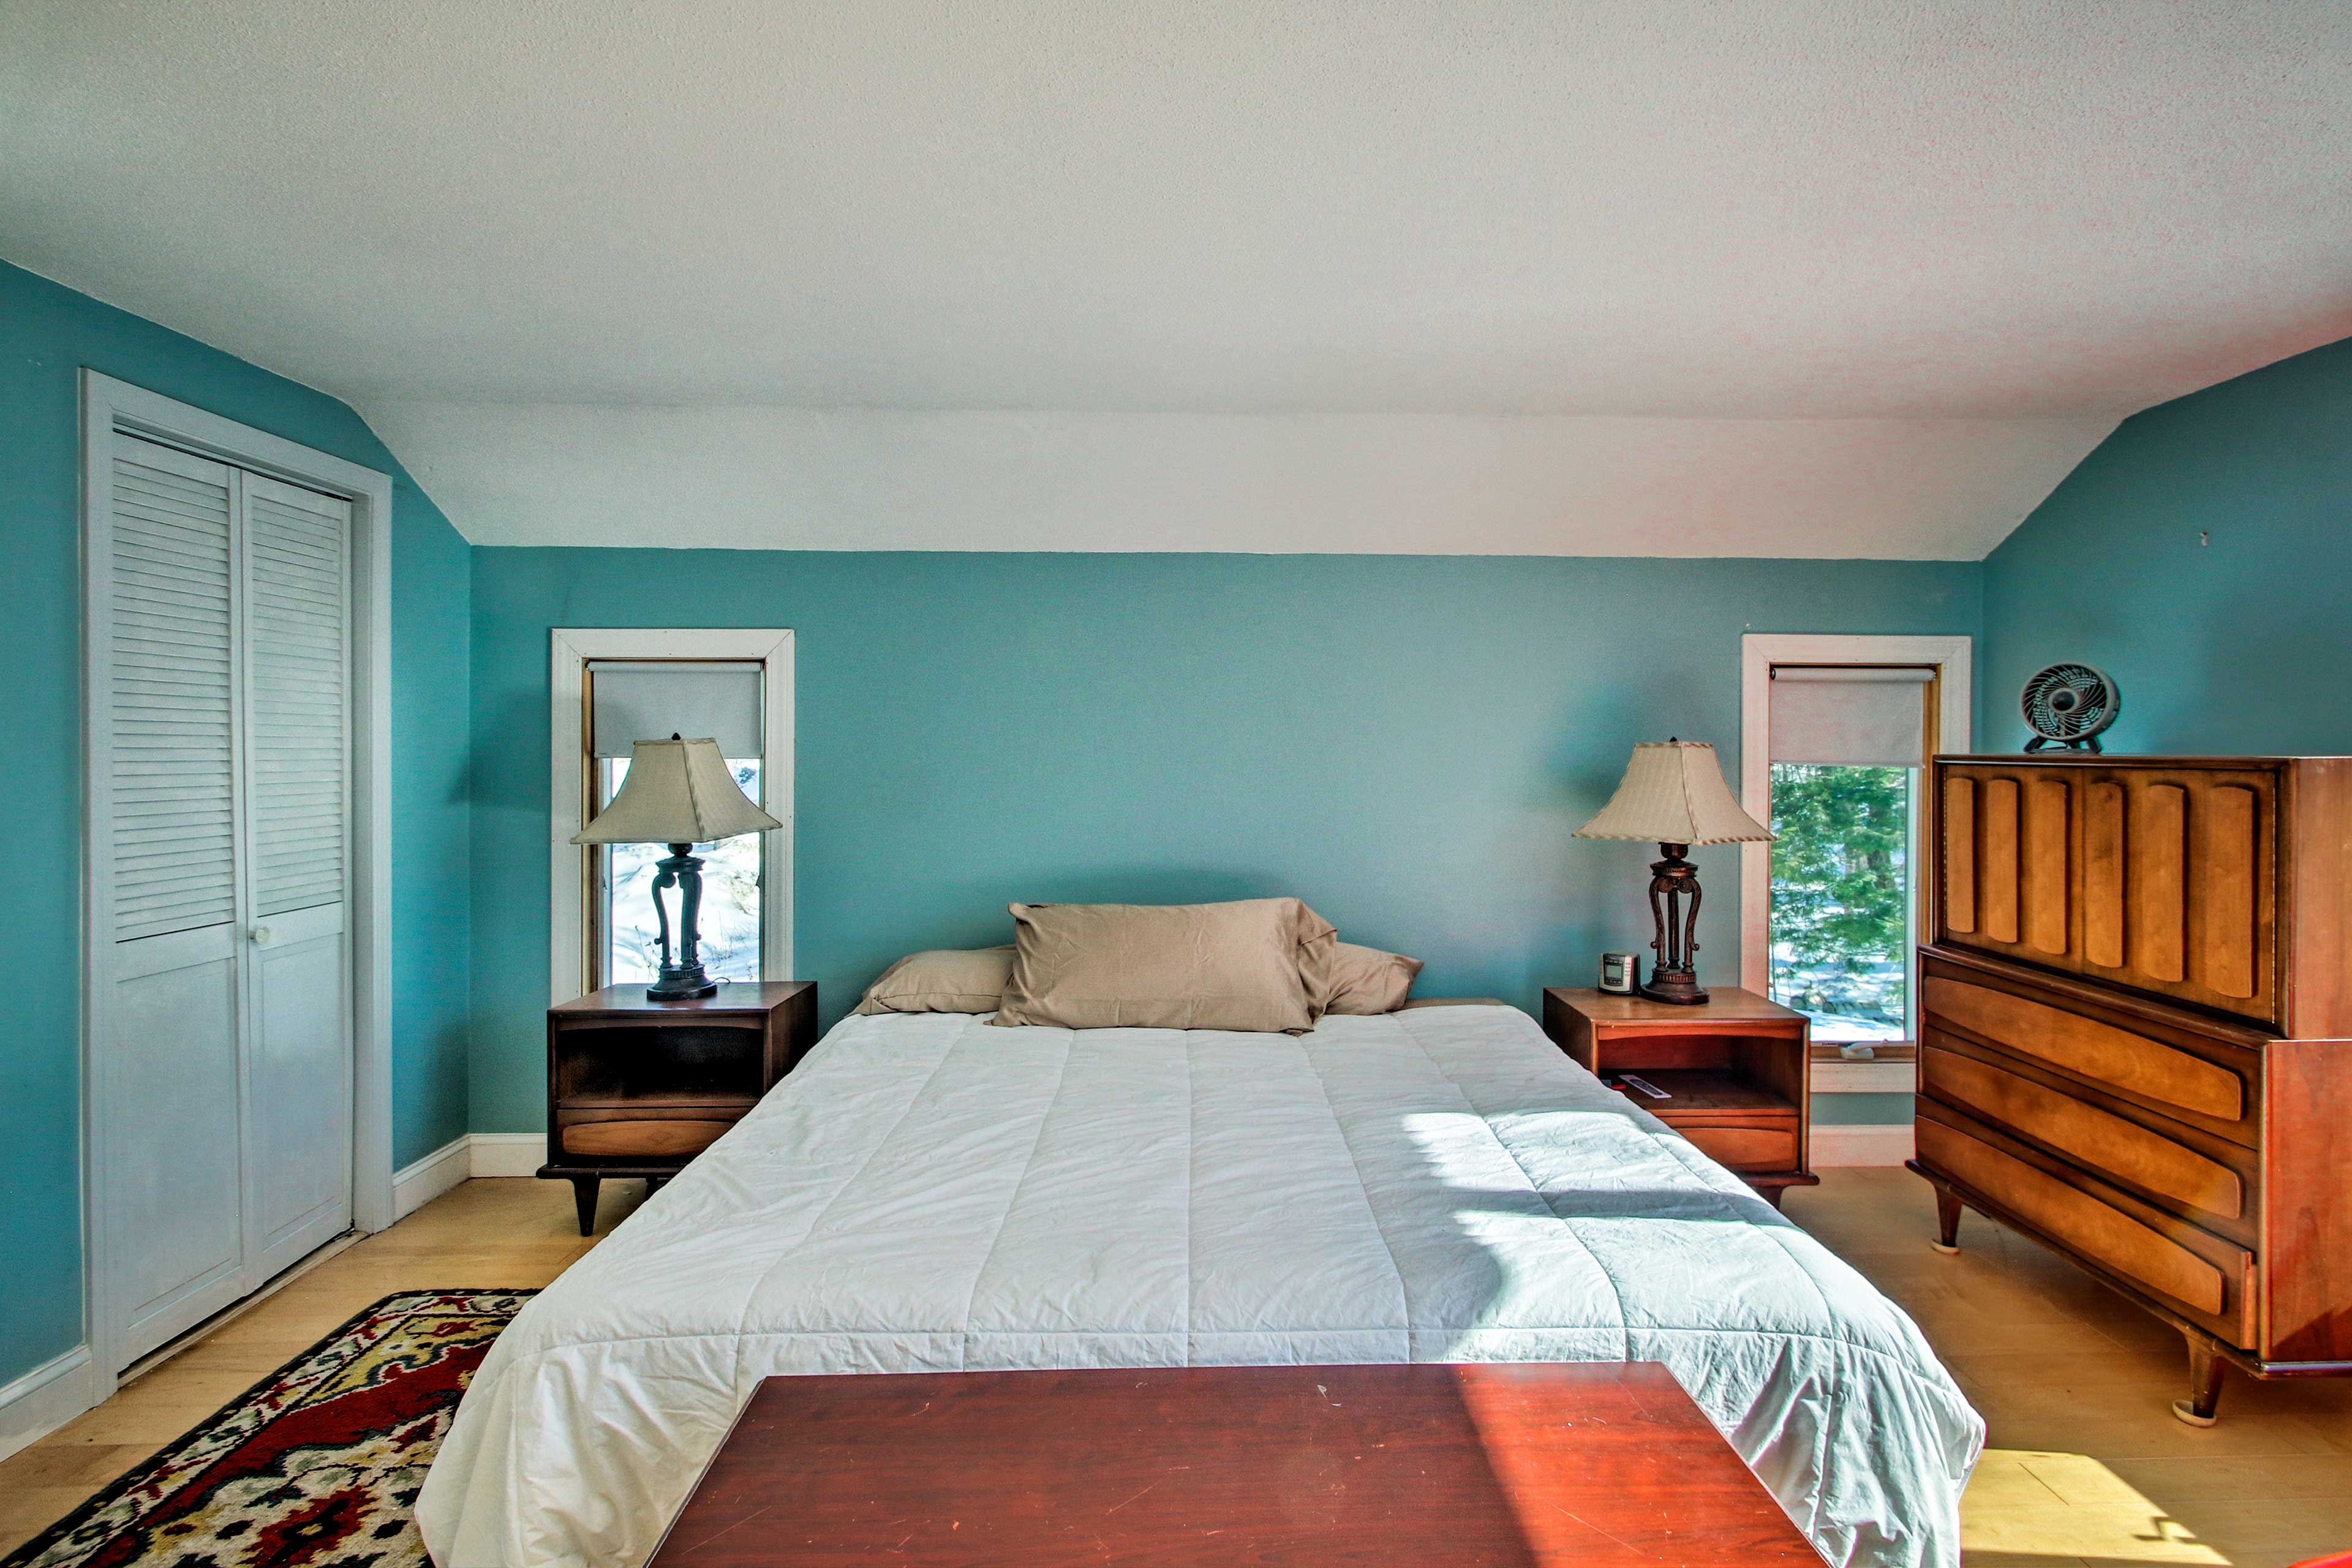 Two guests can sleep on the king-sized bed.